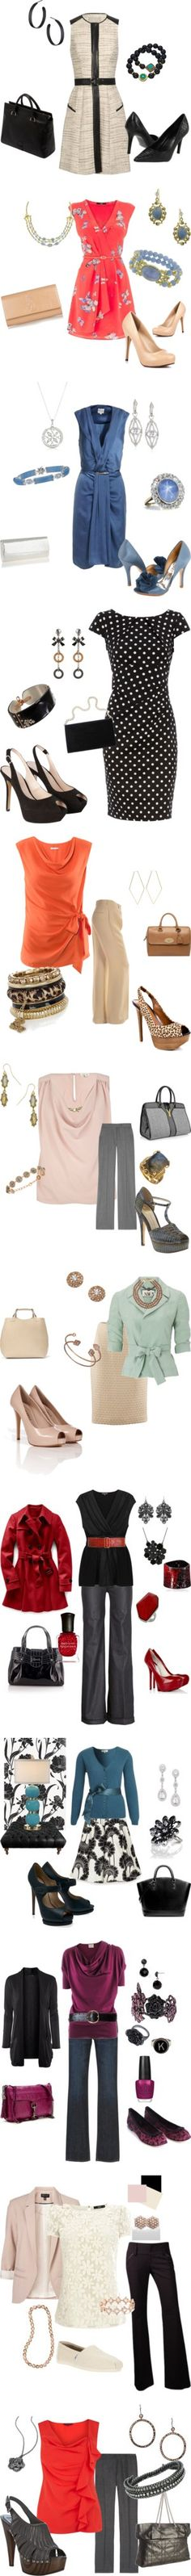 """Time for work"" by kaye-hawkins ❤ liked on Polyvore"